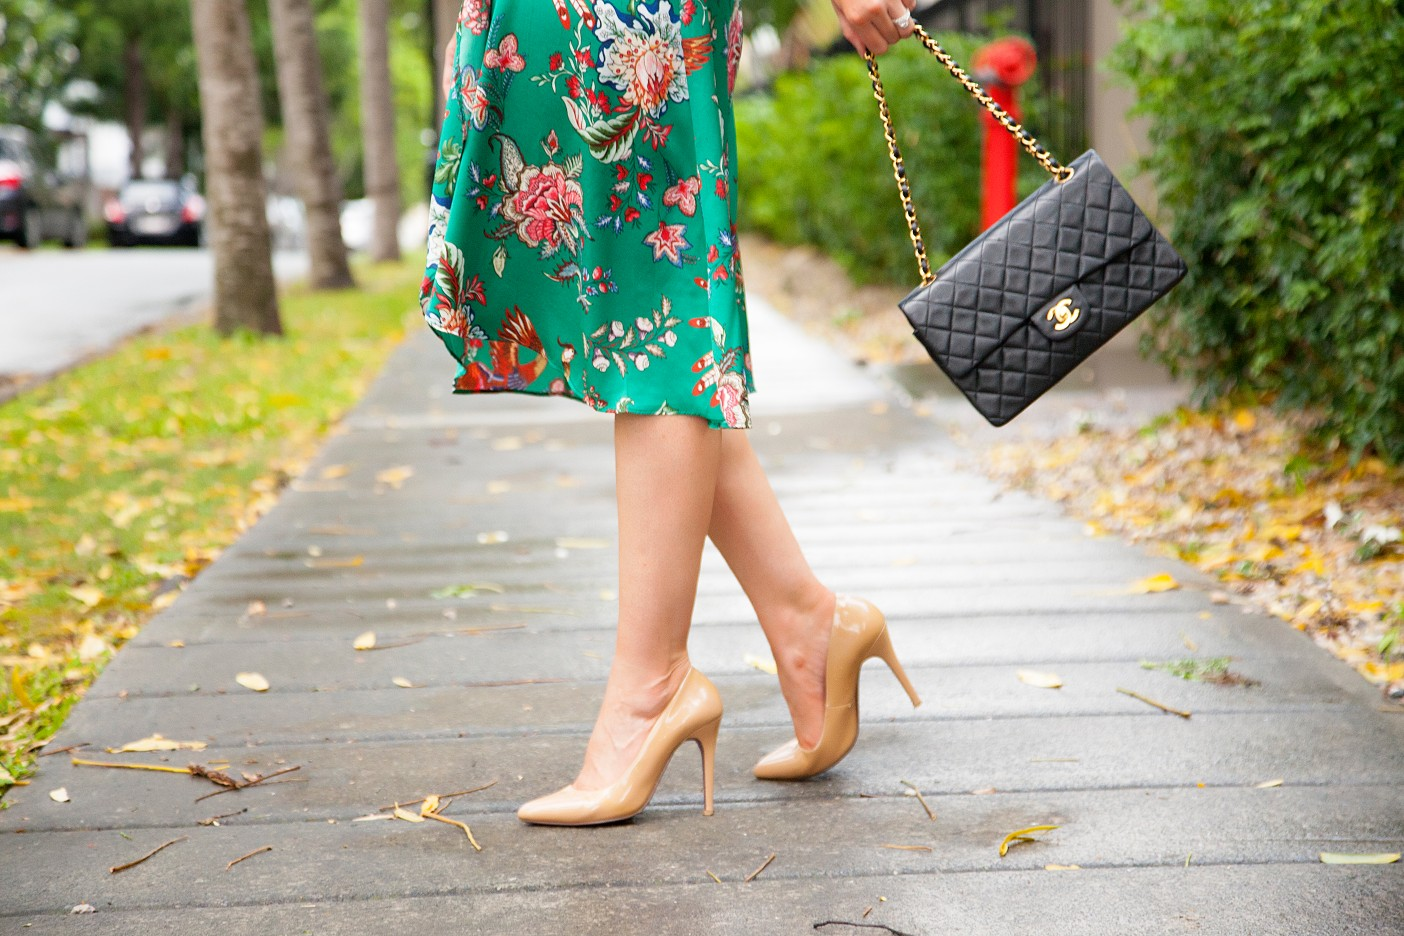 silk pajama print green emerald dress fashion blogger outfit ideas chanel flap handbag lauren slade style elixir 4